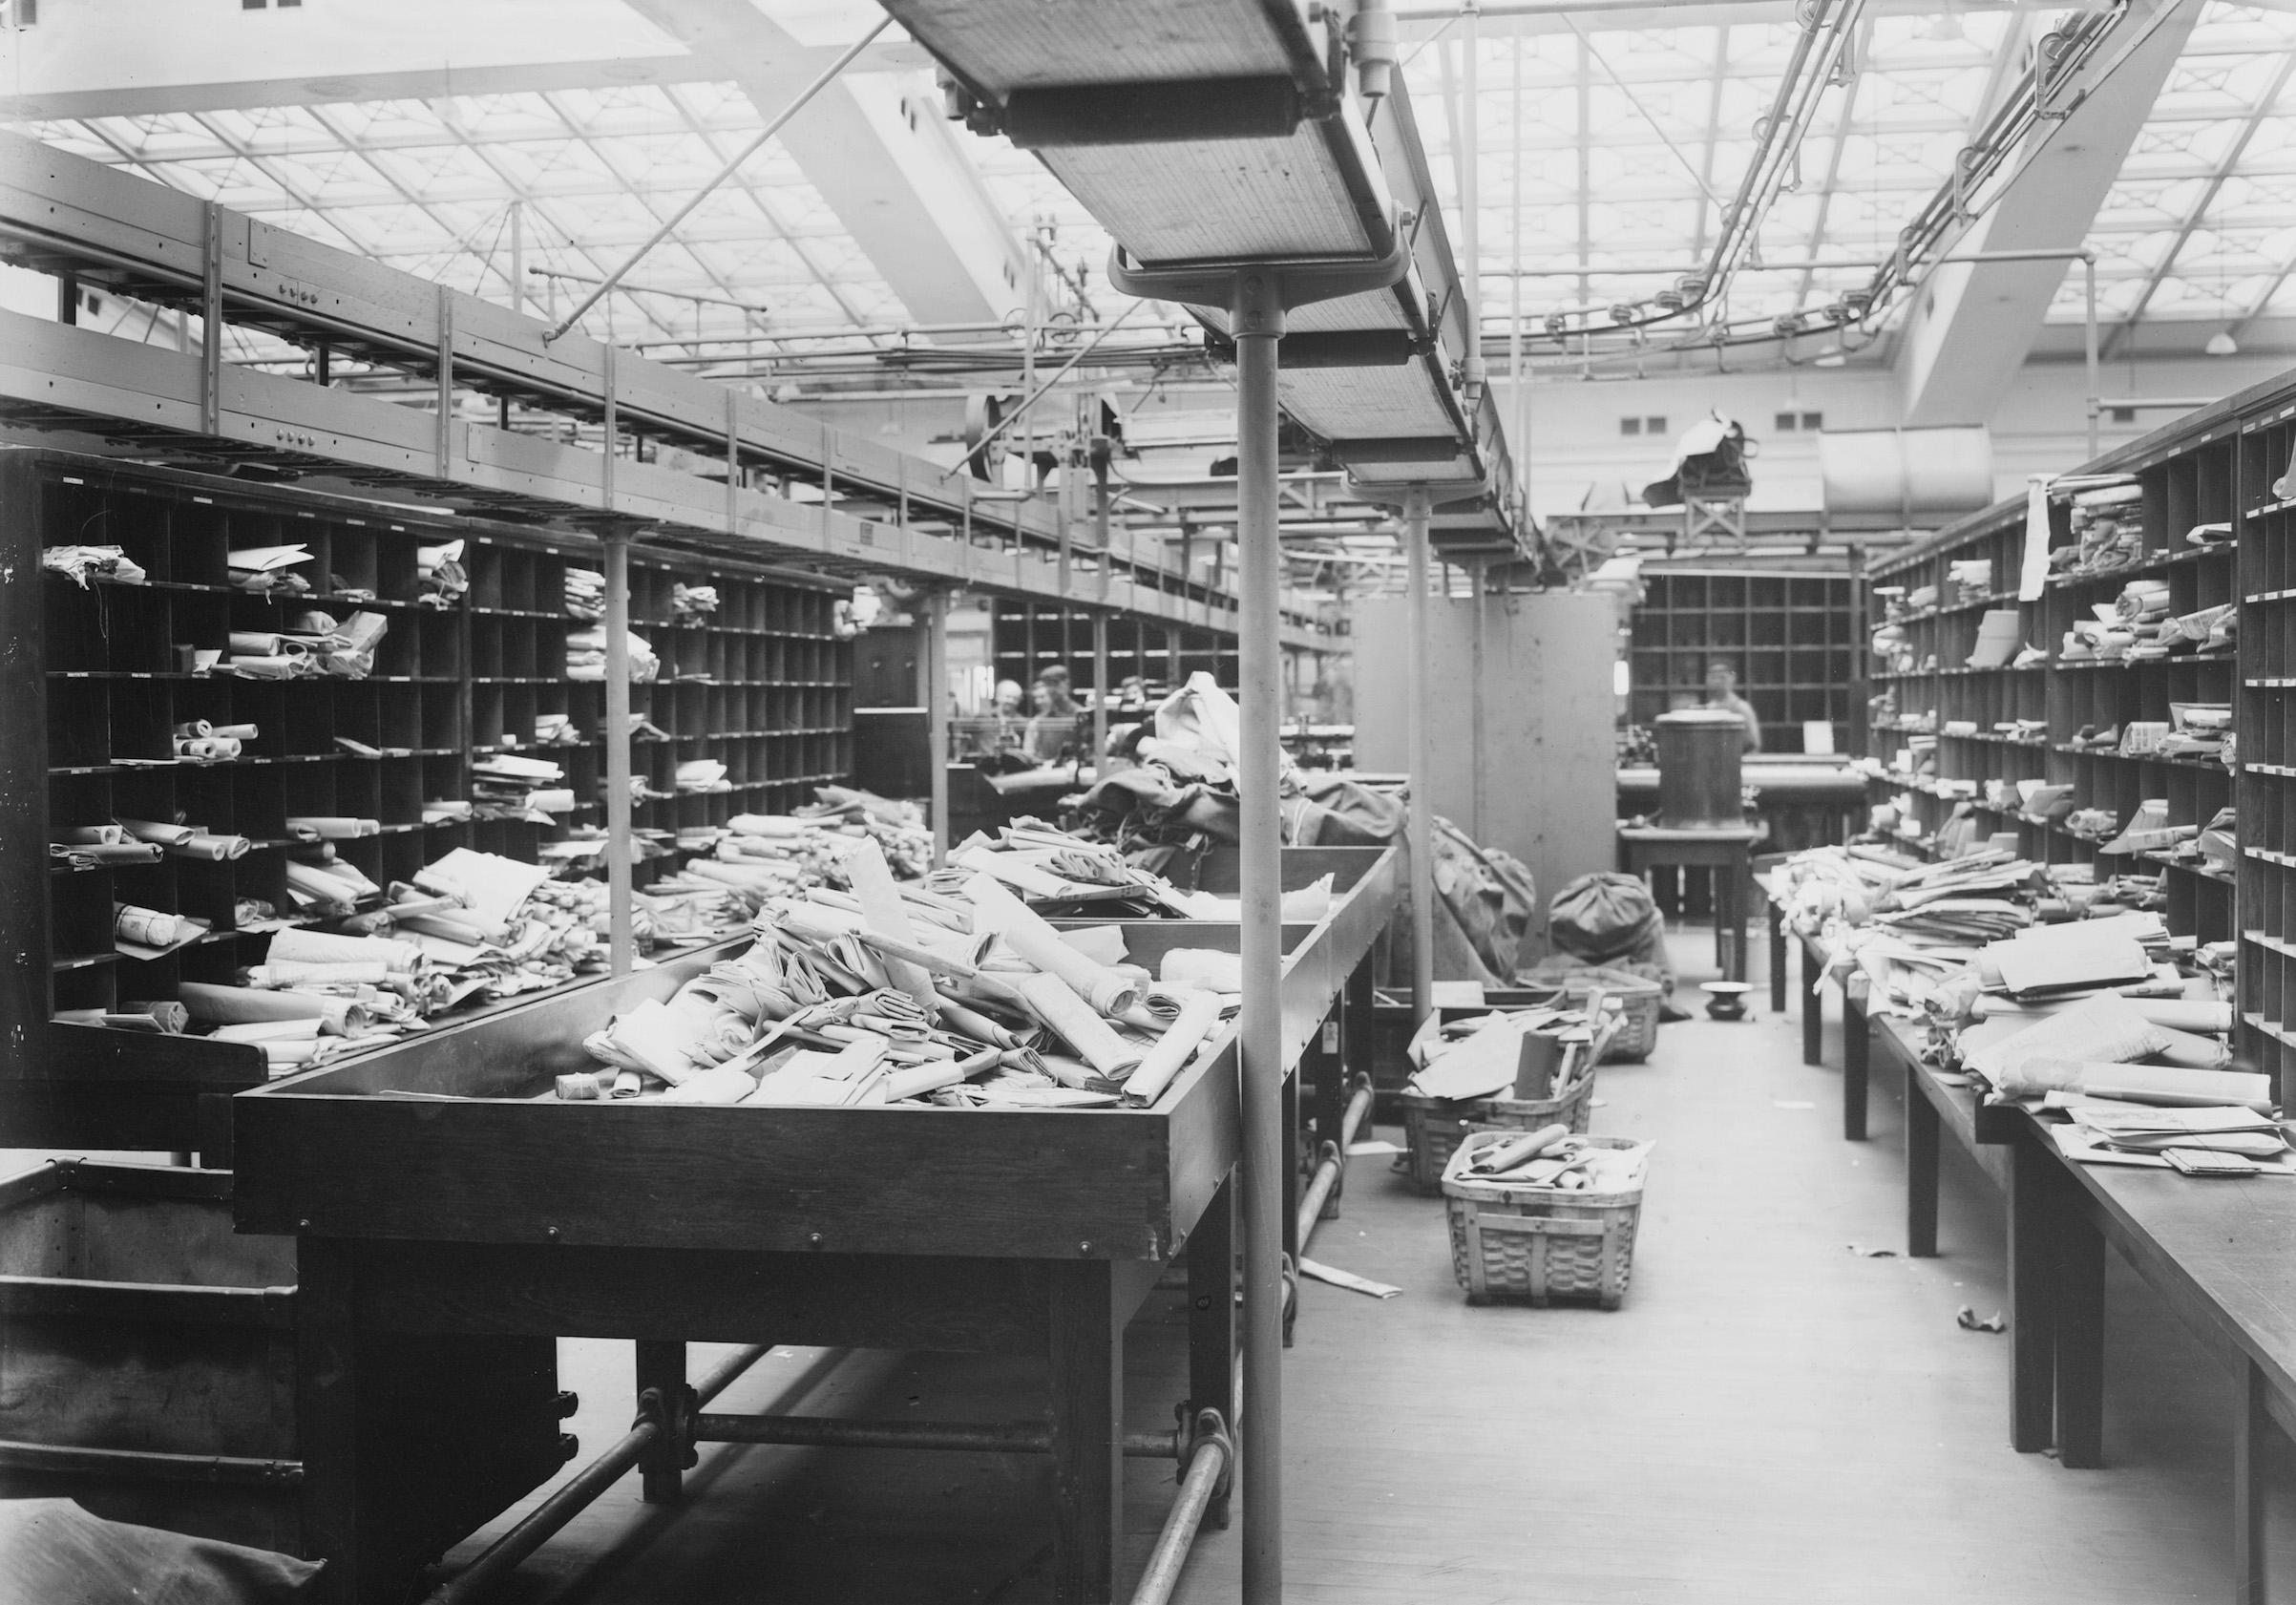 Unsorted Mail at General Post Office, New York City, New York, USA, Bain News Service, 1914.